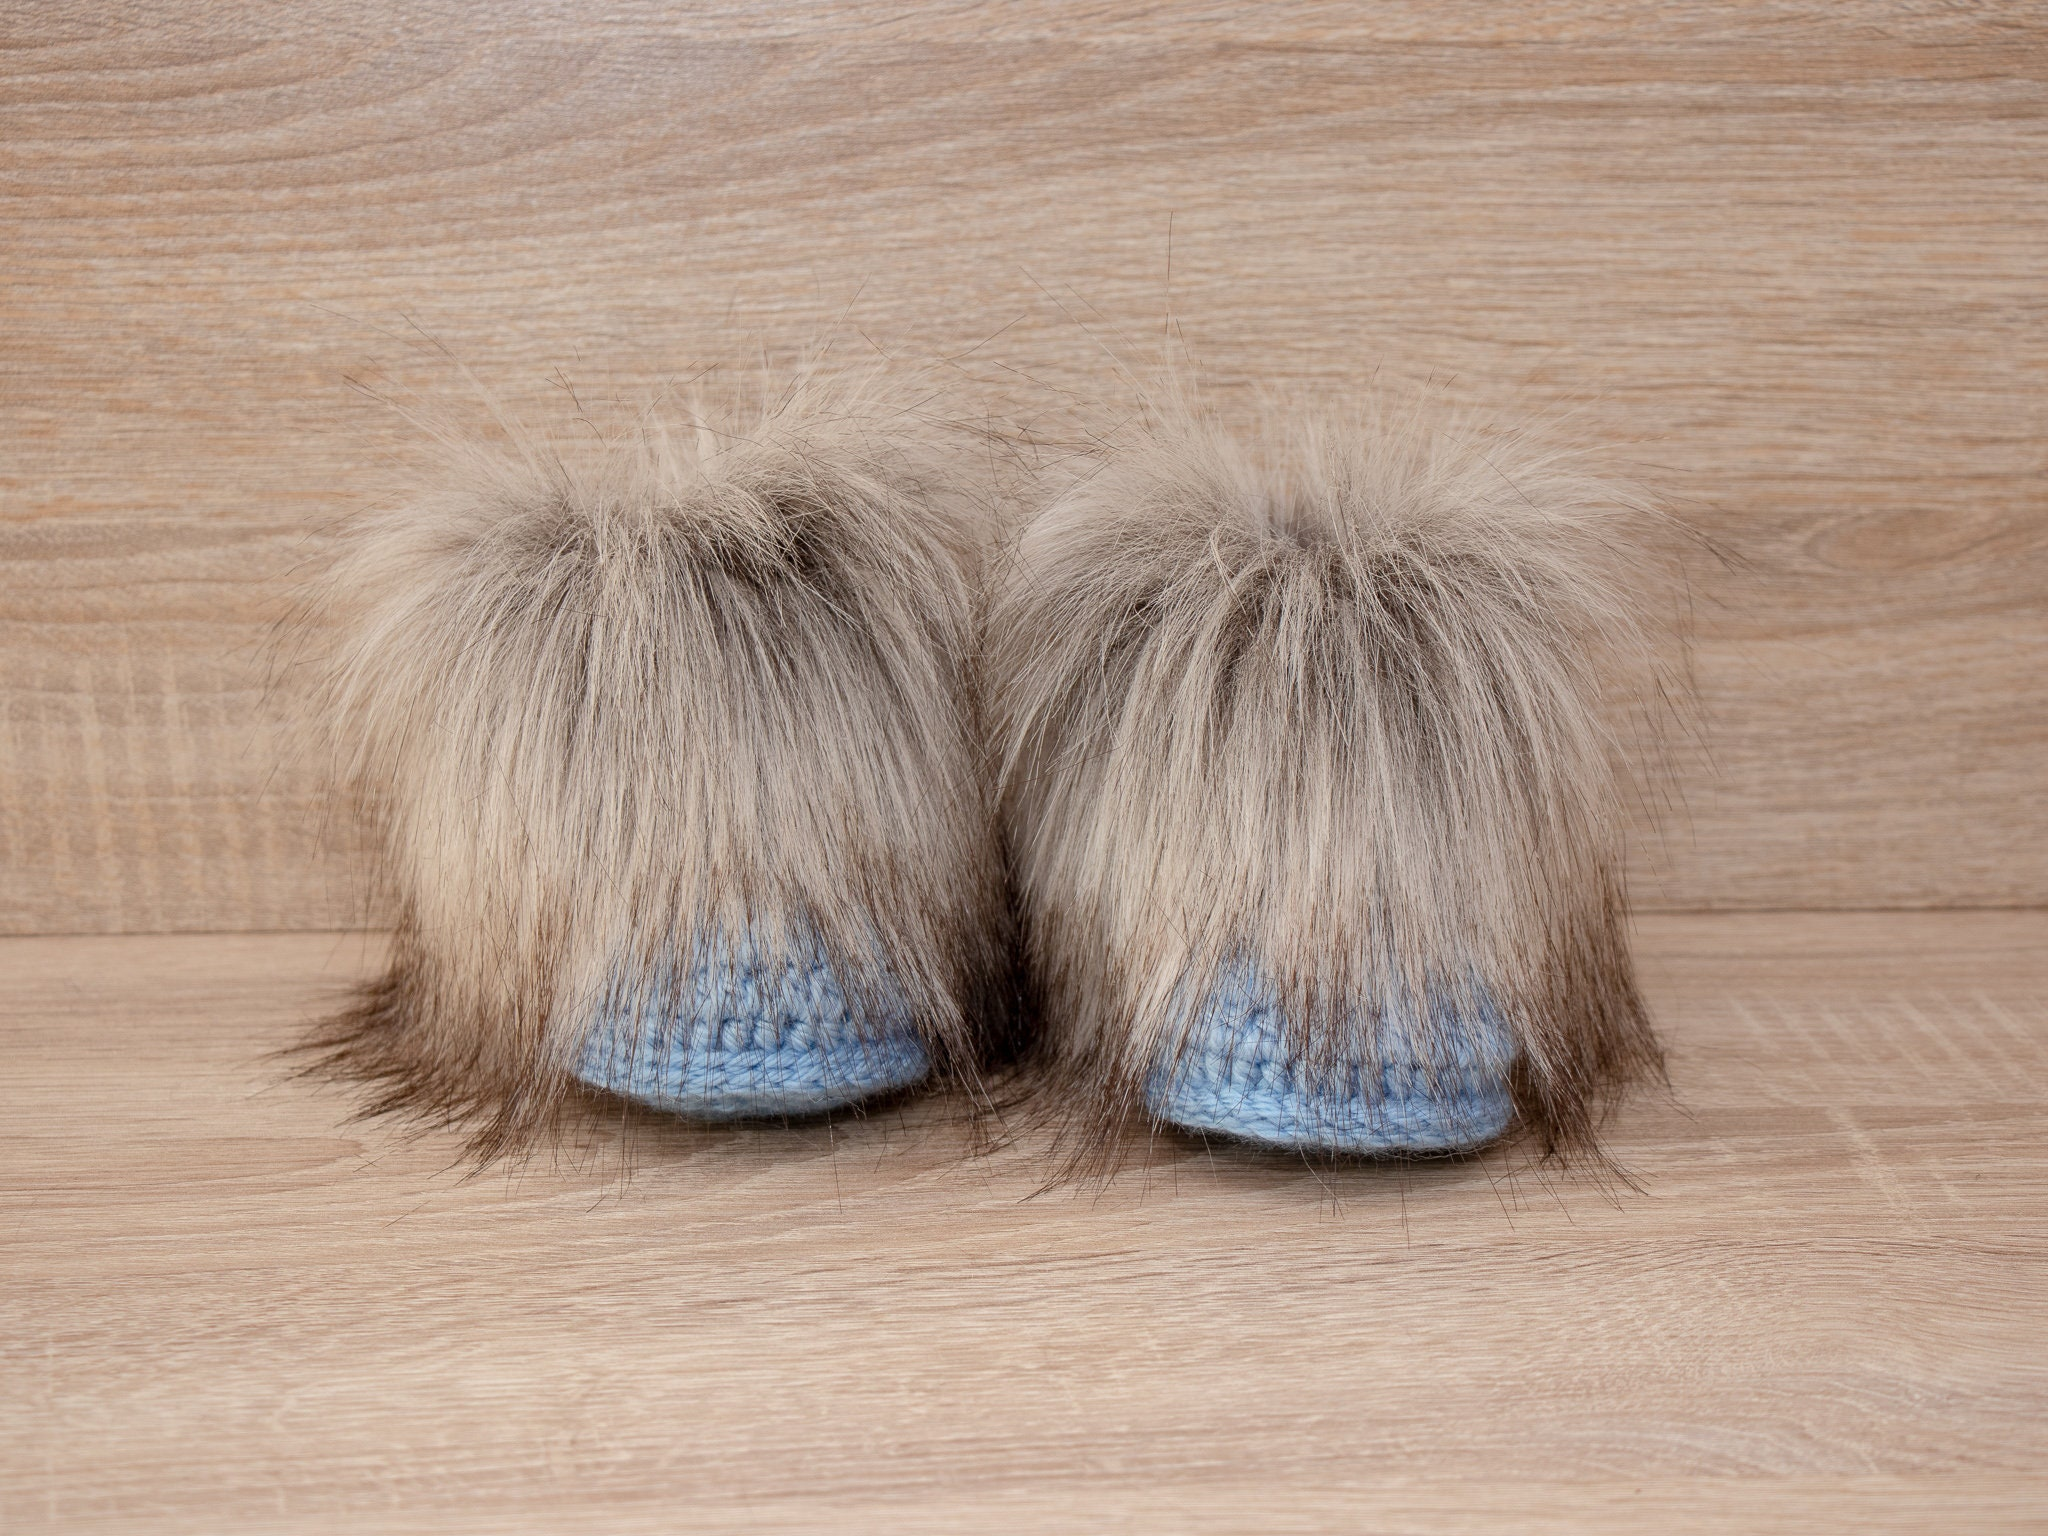 ce88457122e00 Baby boy boots - Faux fur booties - Crochet baby Booties - Baby boy ...